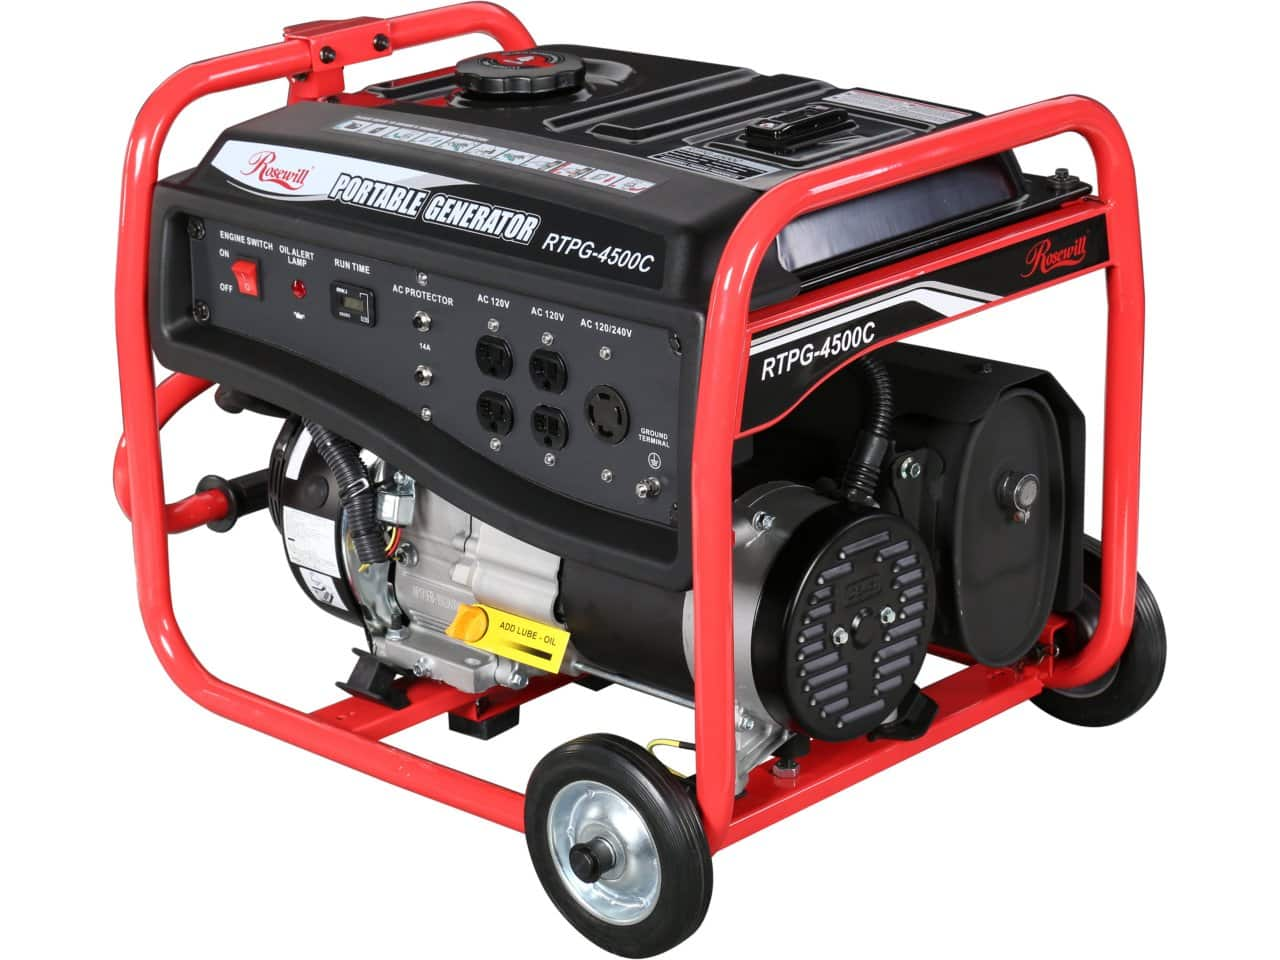 Rosewill 3850W (3300W Running) 7.5 HP CARB Compliant Gas Powered Portable Power Generator with Wheel Kit for $119.99 AR + Free Shipping @ Newegg.com